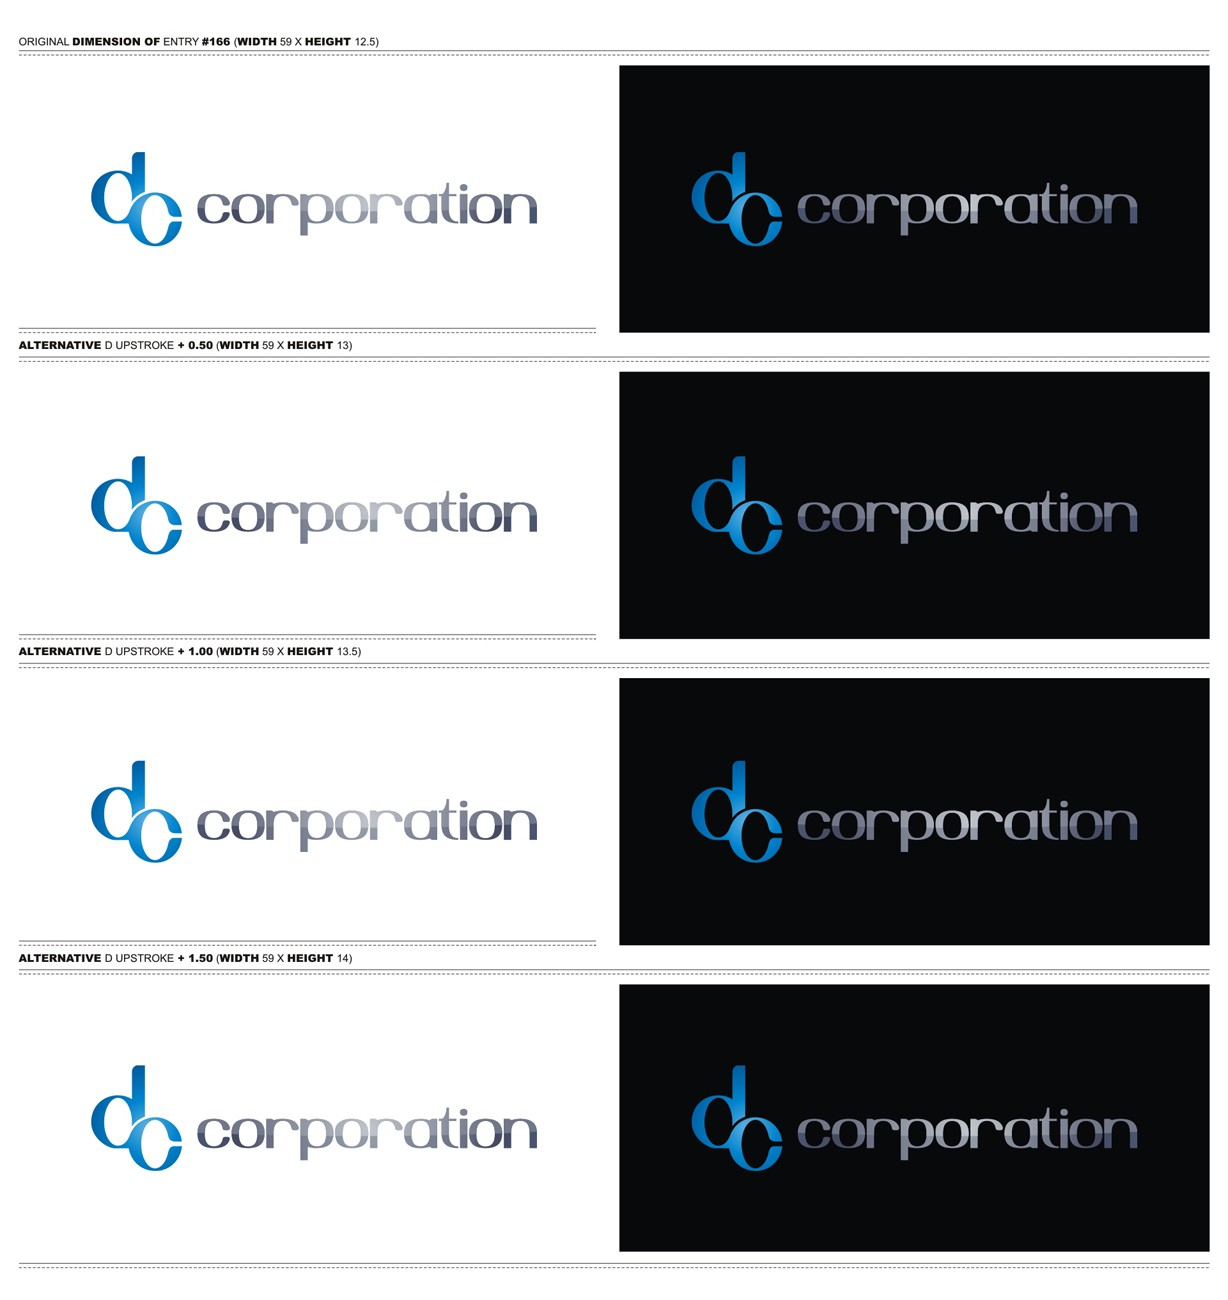 Logo with DC/  or  dc/  needed for DC Corporation